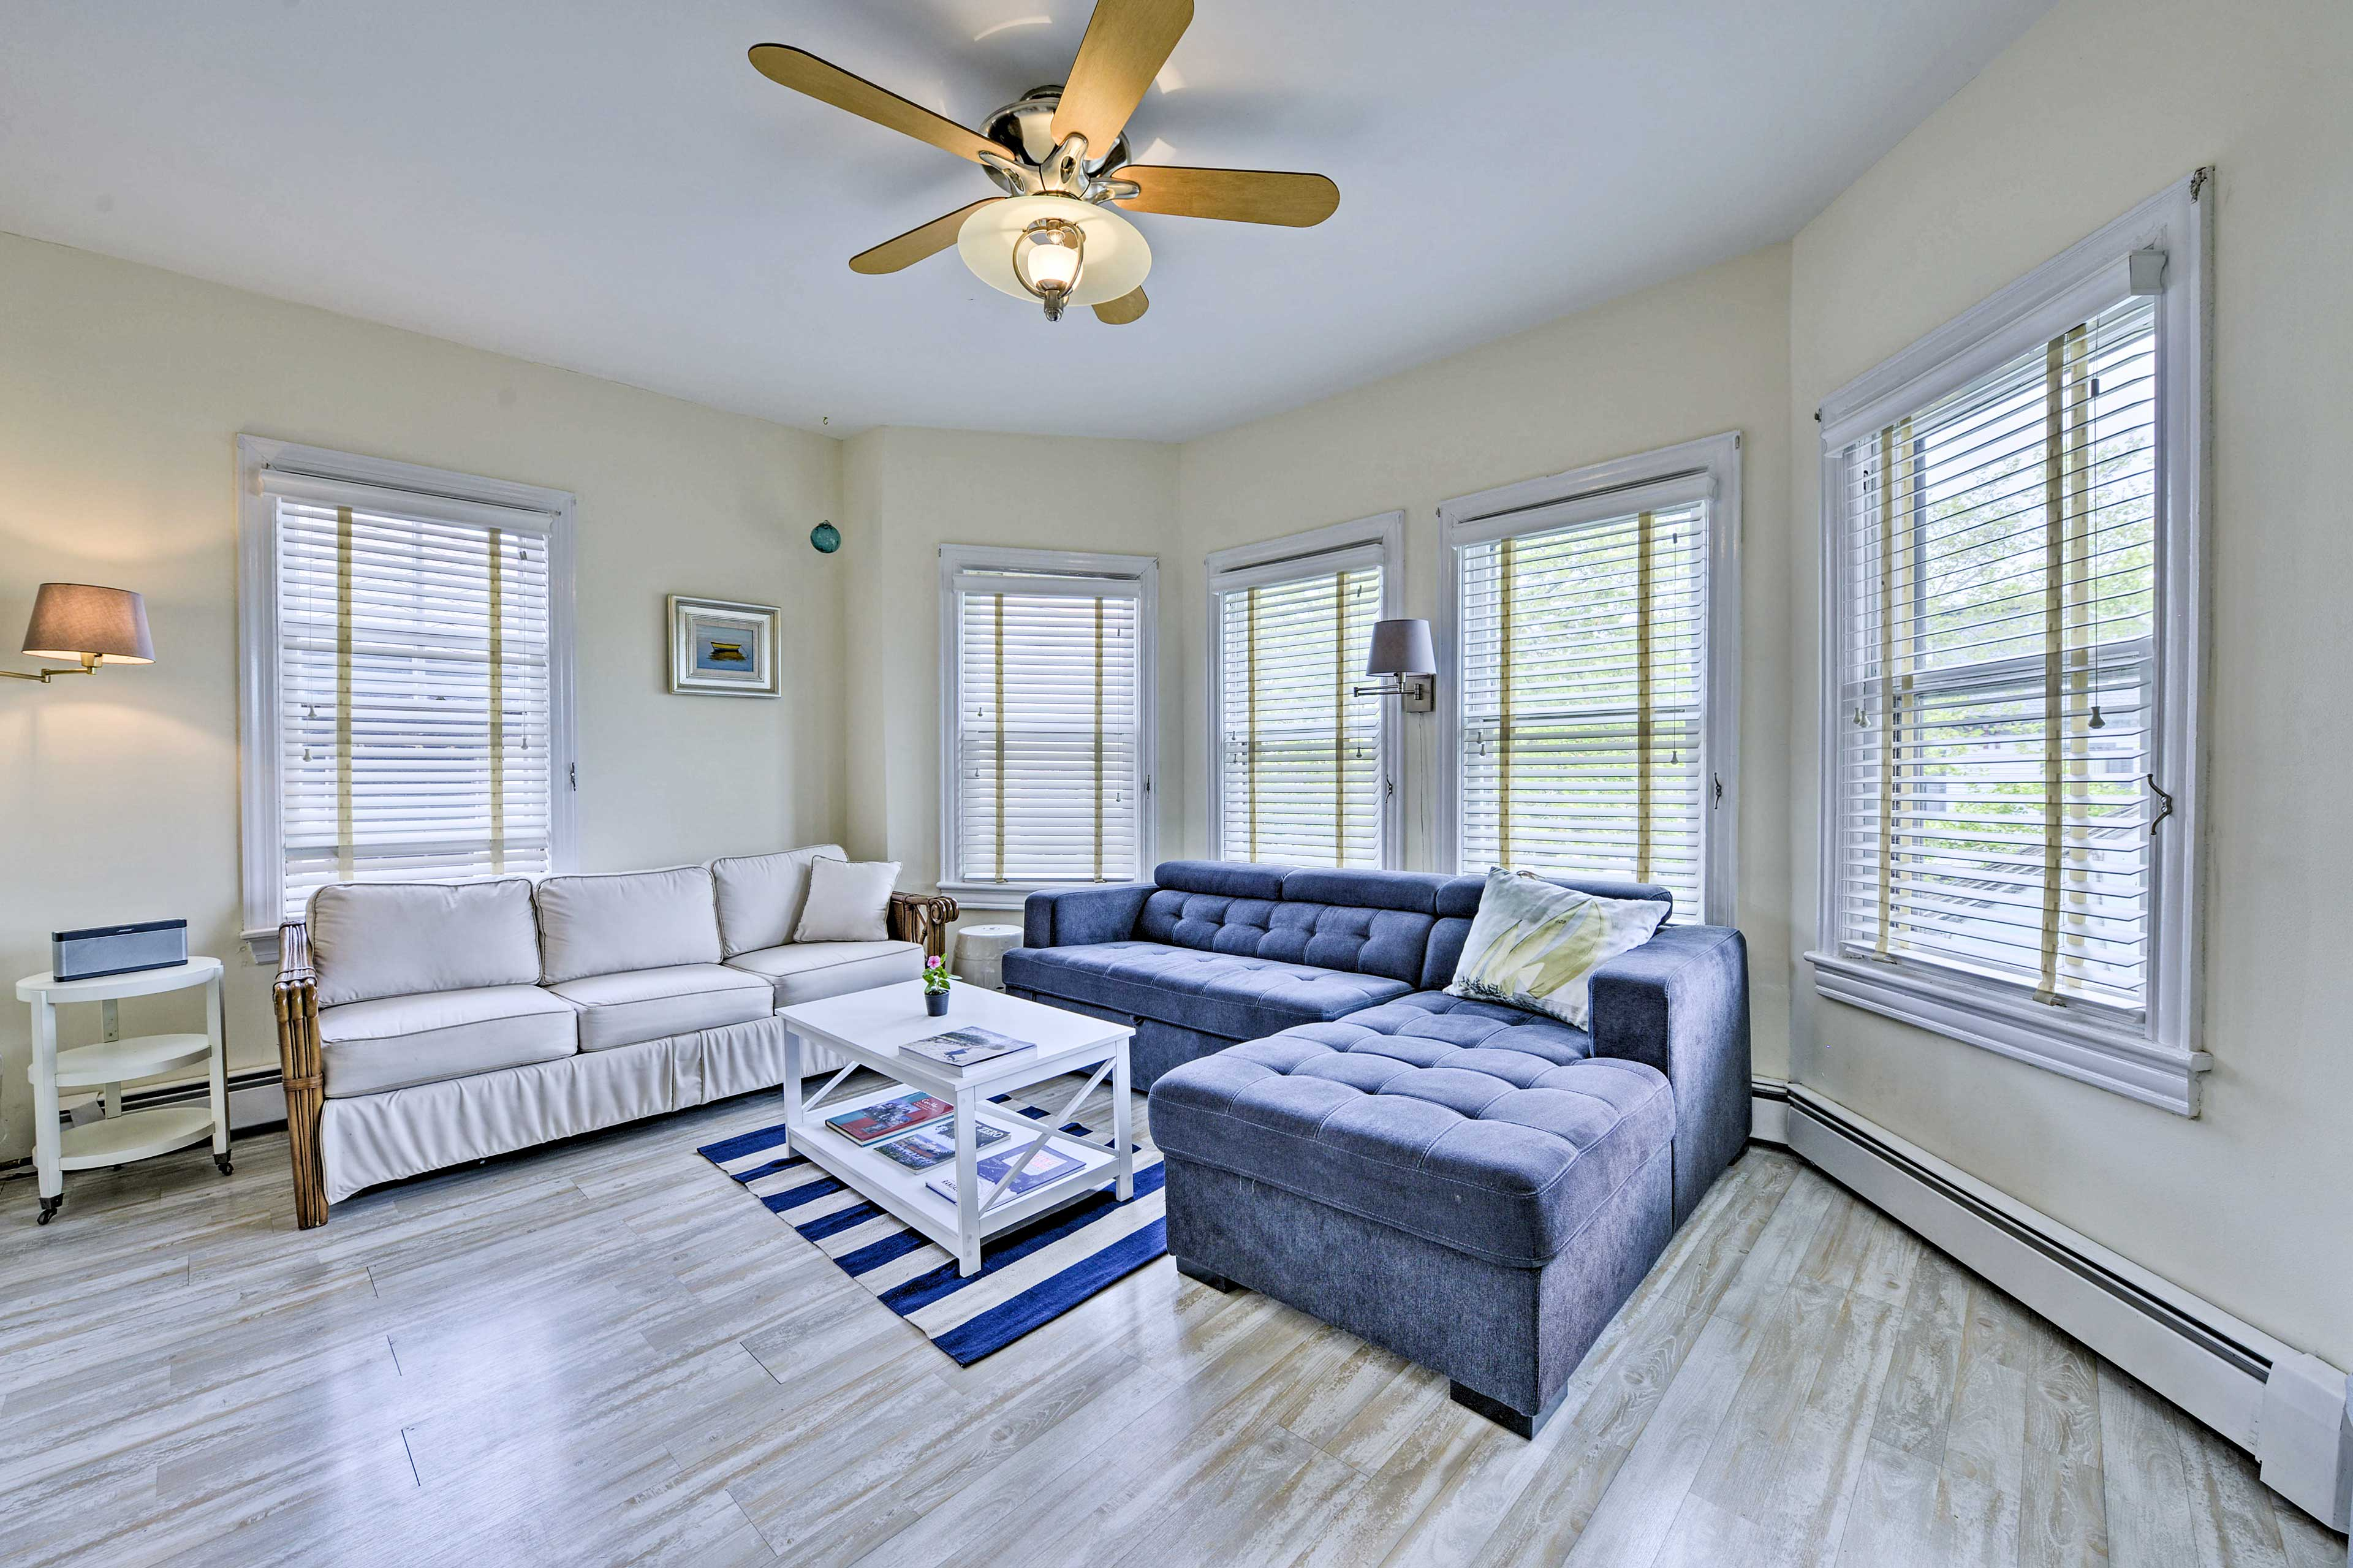 The living room is filled with natural sunlight each day.